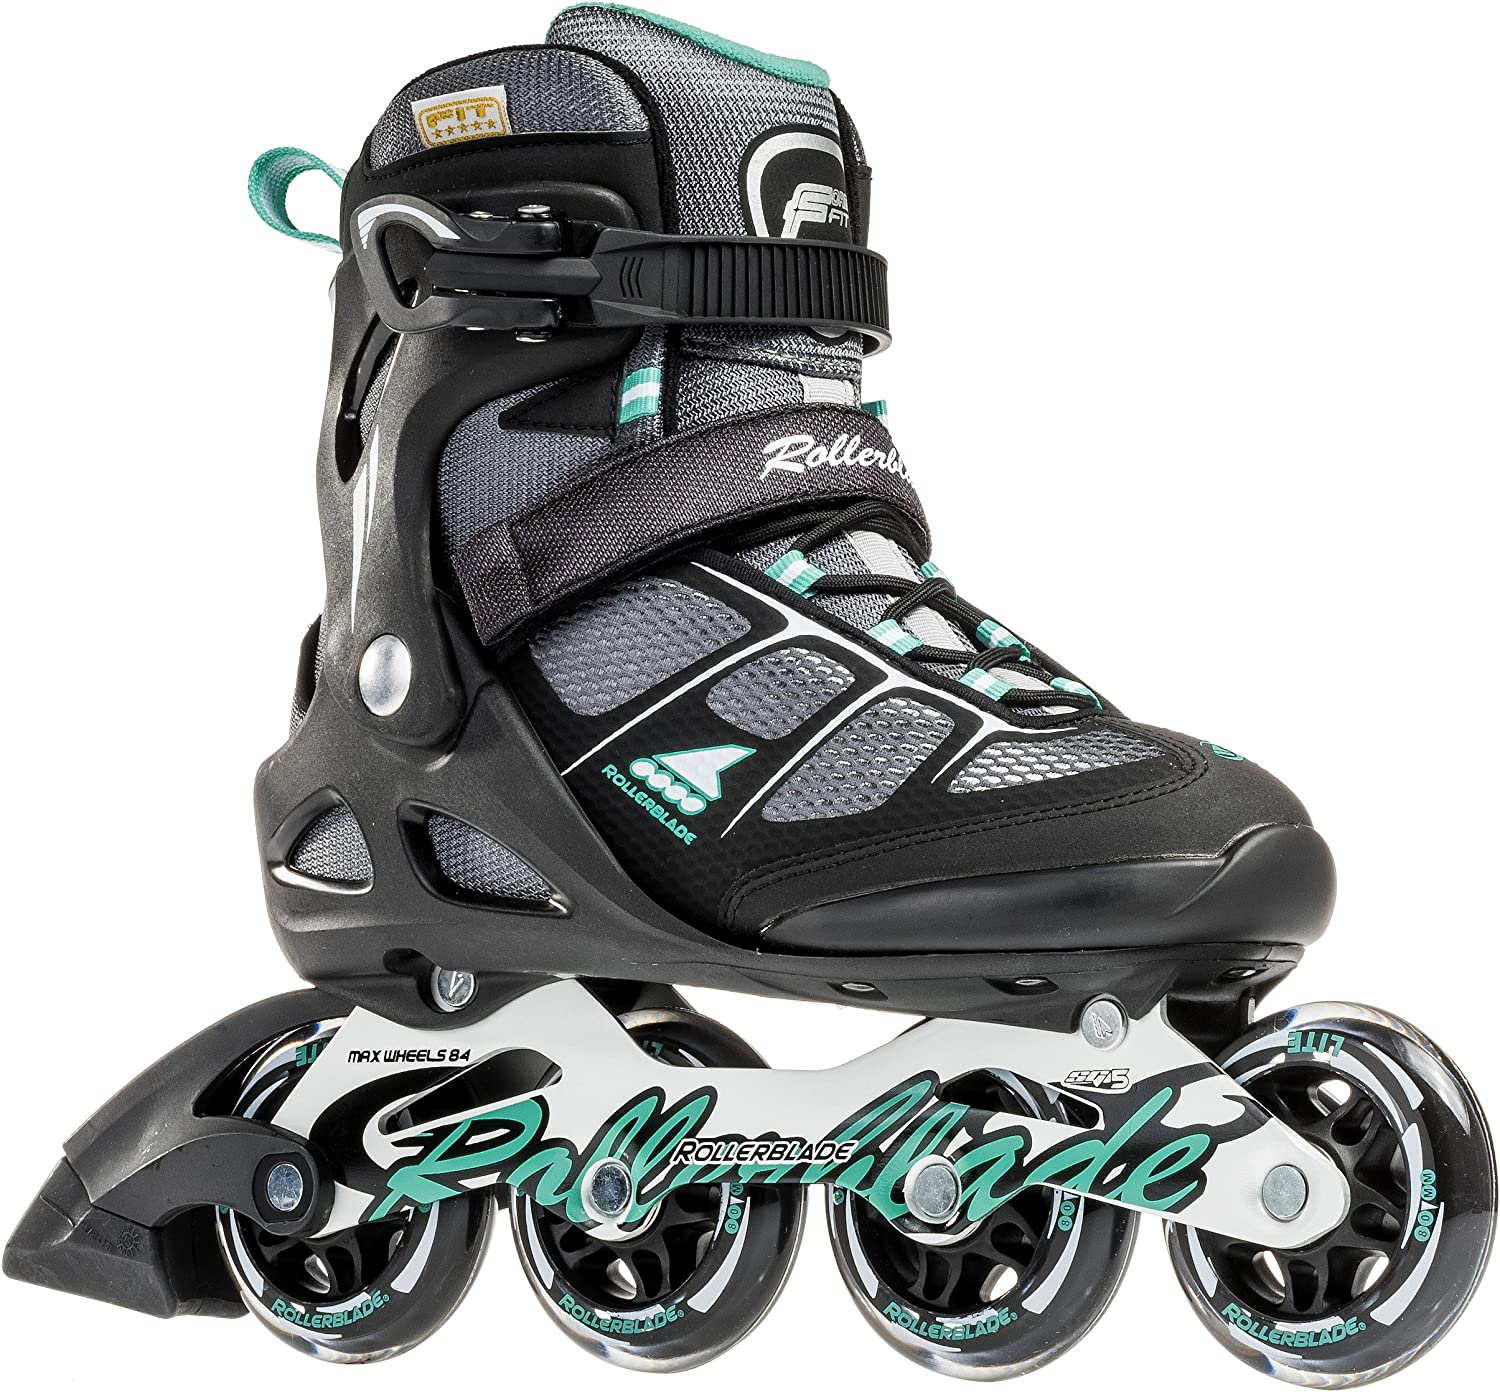 Rollerblade Macroblade 80 Alu 16 All Purpose Skate